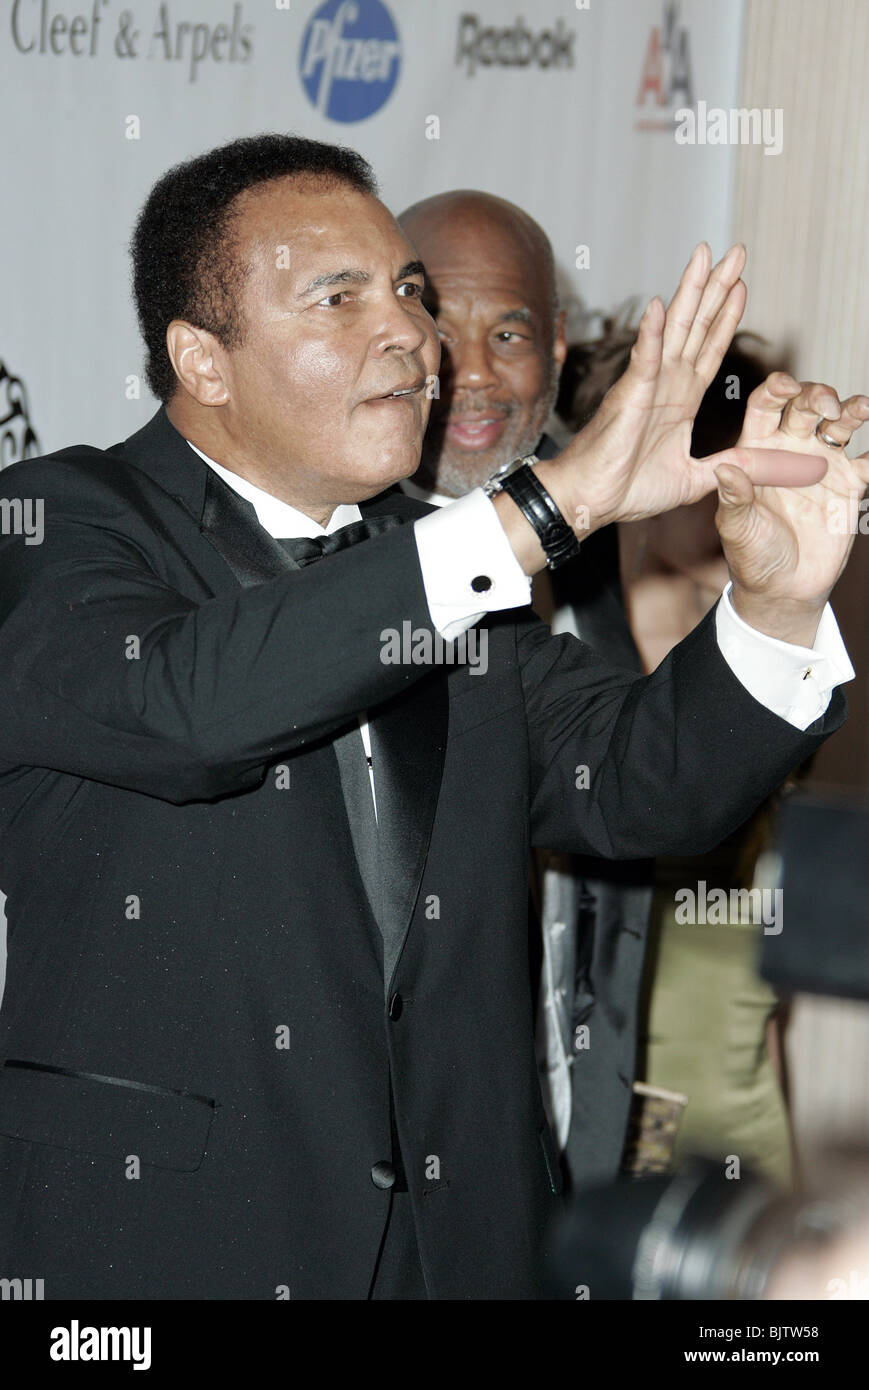 MUHAMMAD ALI 16TH ANNUAL CAROUSEL OF HOPE G BEVERLY HILTON BEVERLY HILLS LA USA 23 October 2004 - Stock Image